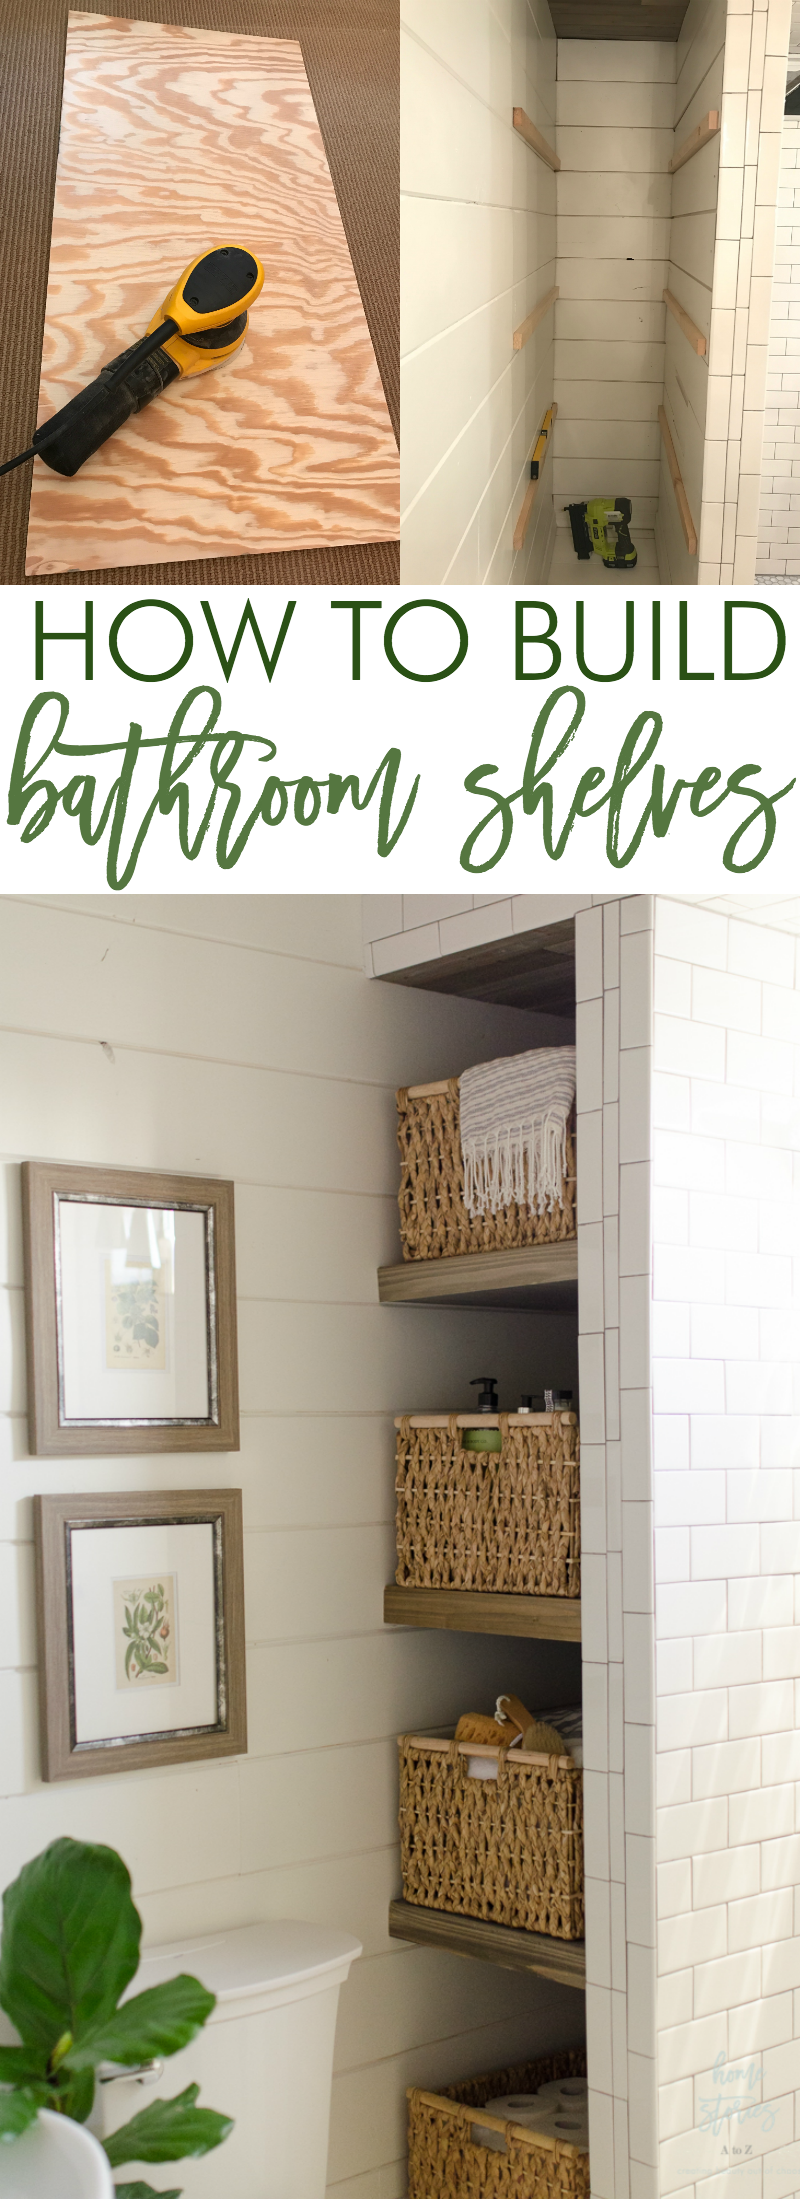 How to build bathroom shelves next to shower inexpensive diy bathroom shelves